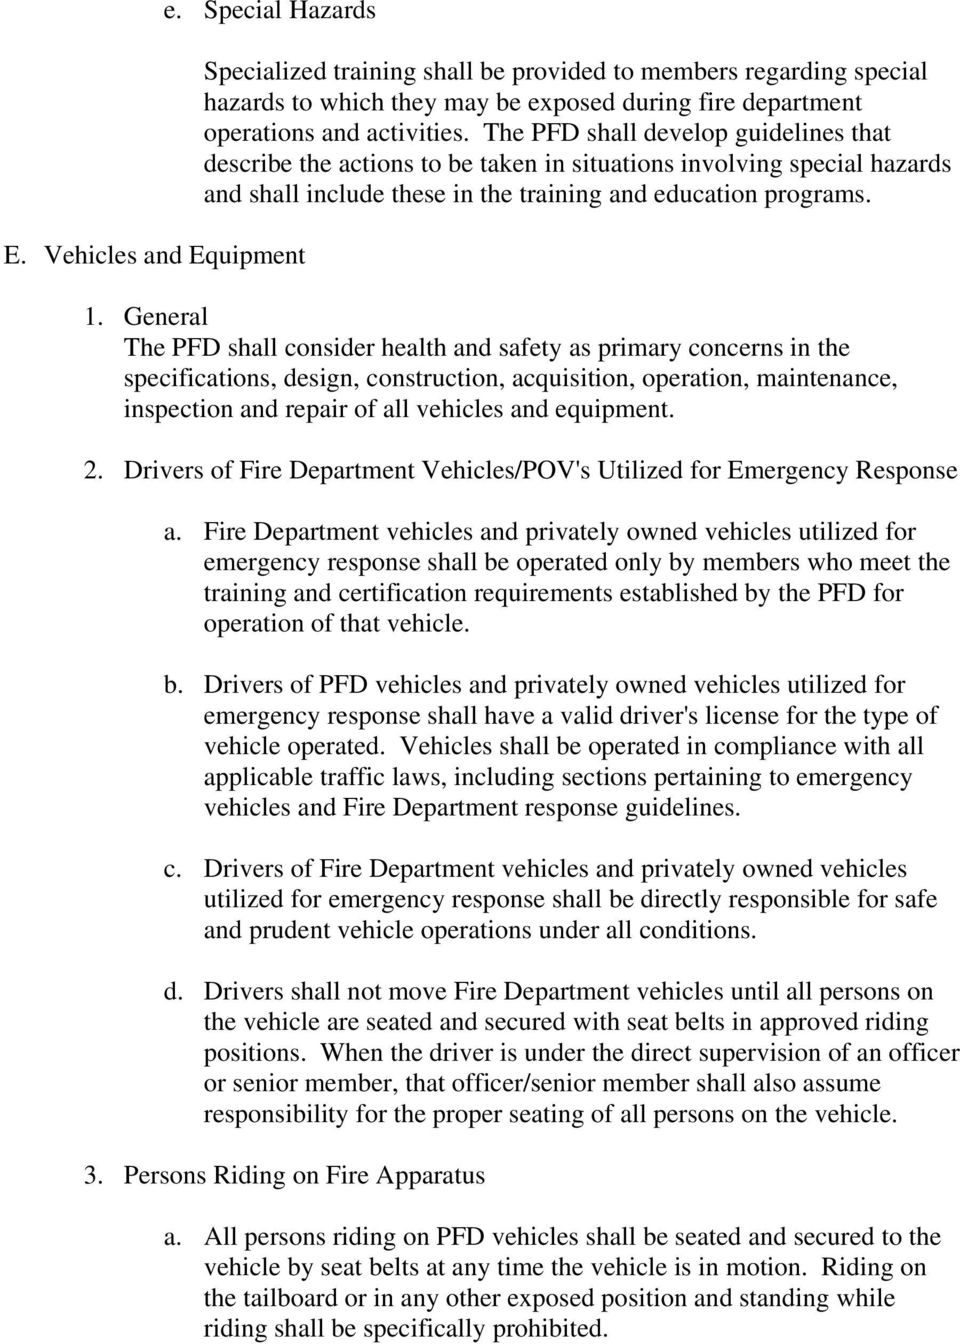 General The PFD shall consider health and safety as primary concerns in the specifications, design, construction, acquisition, operation, maintenance, inspection and repair of all vehicles and